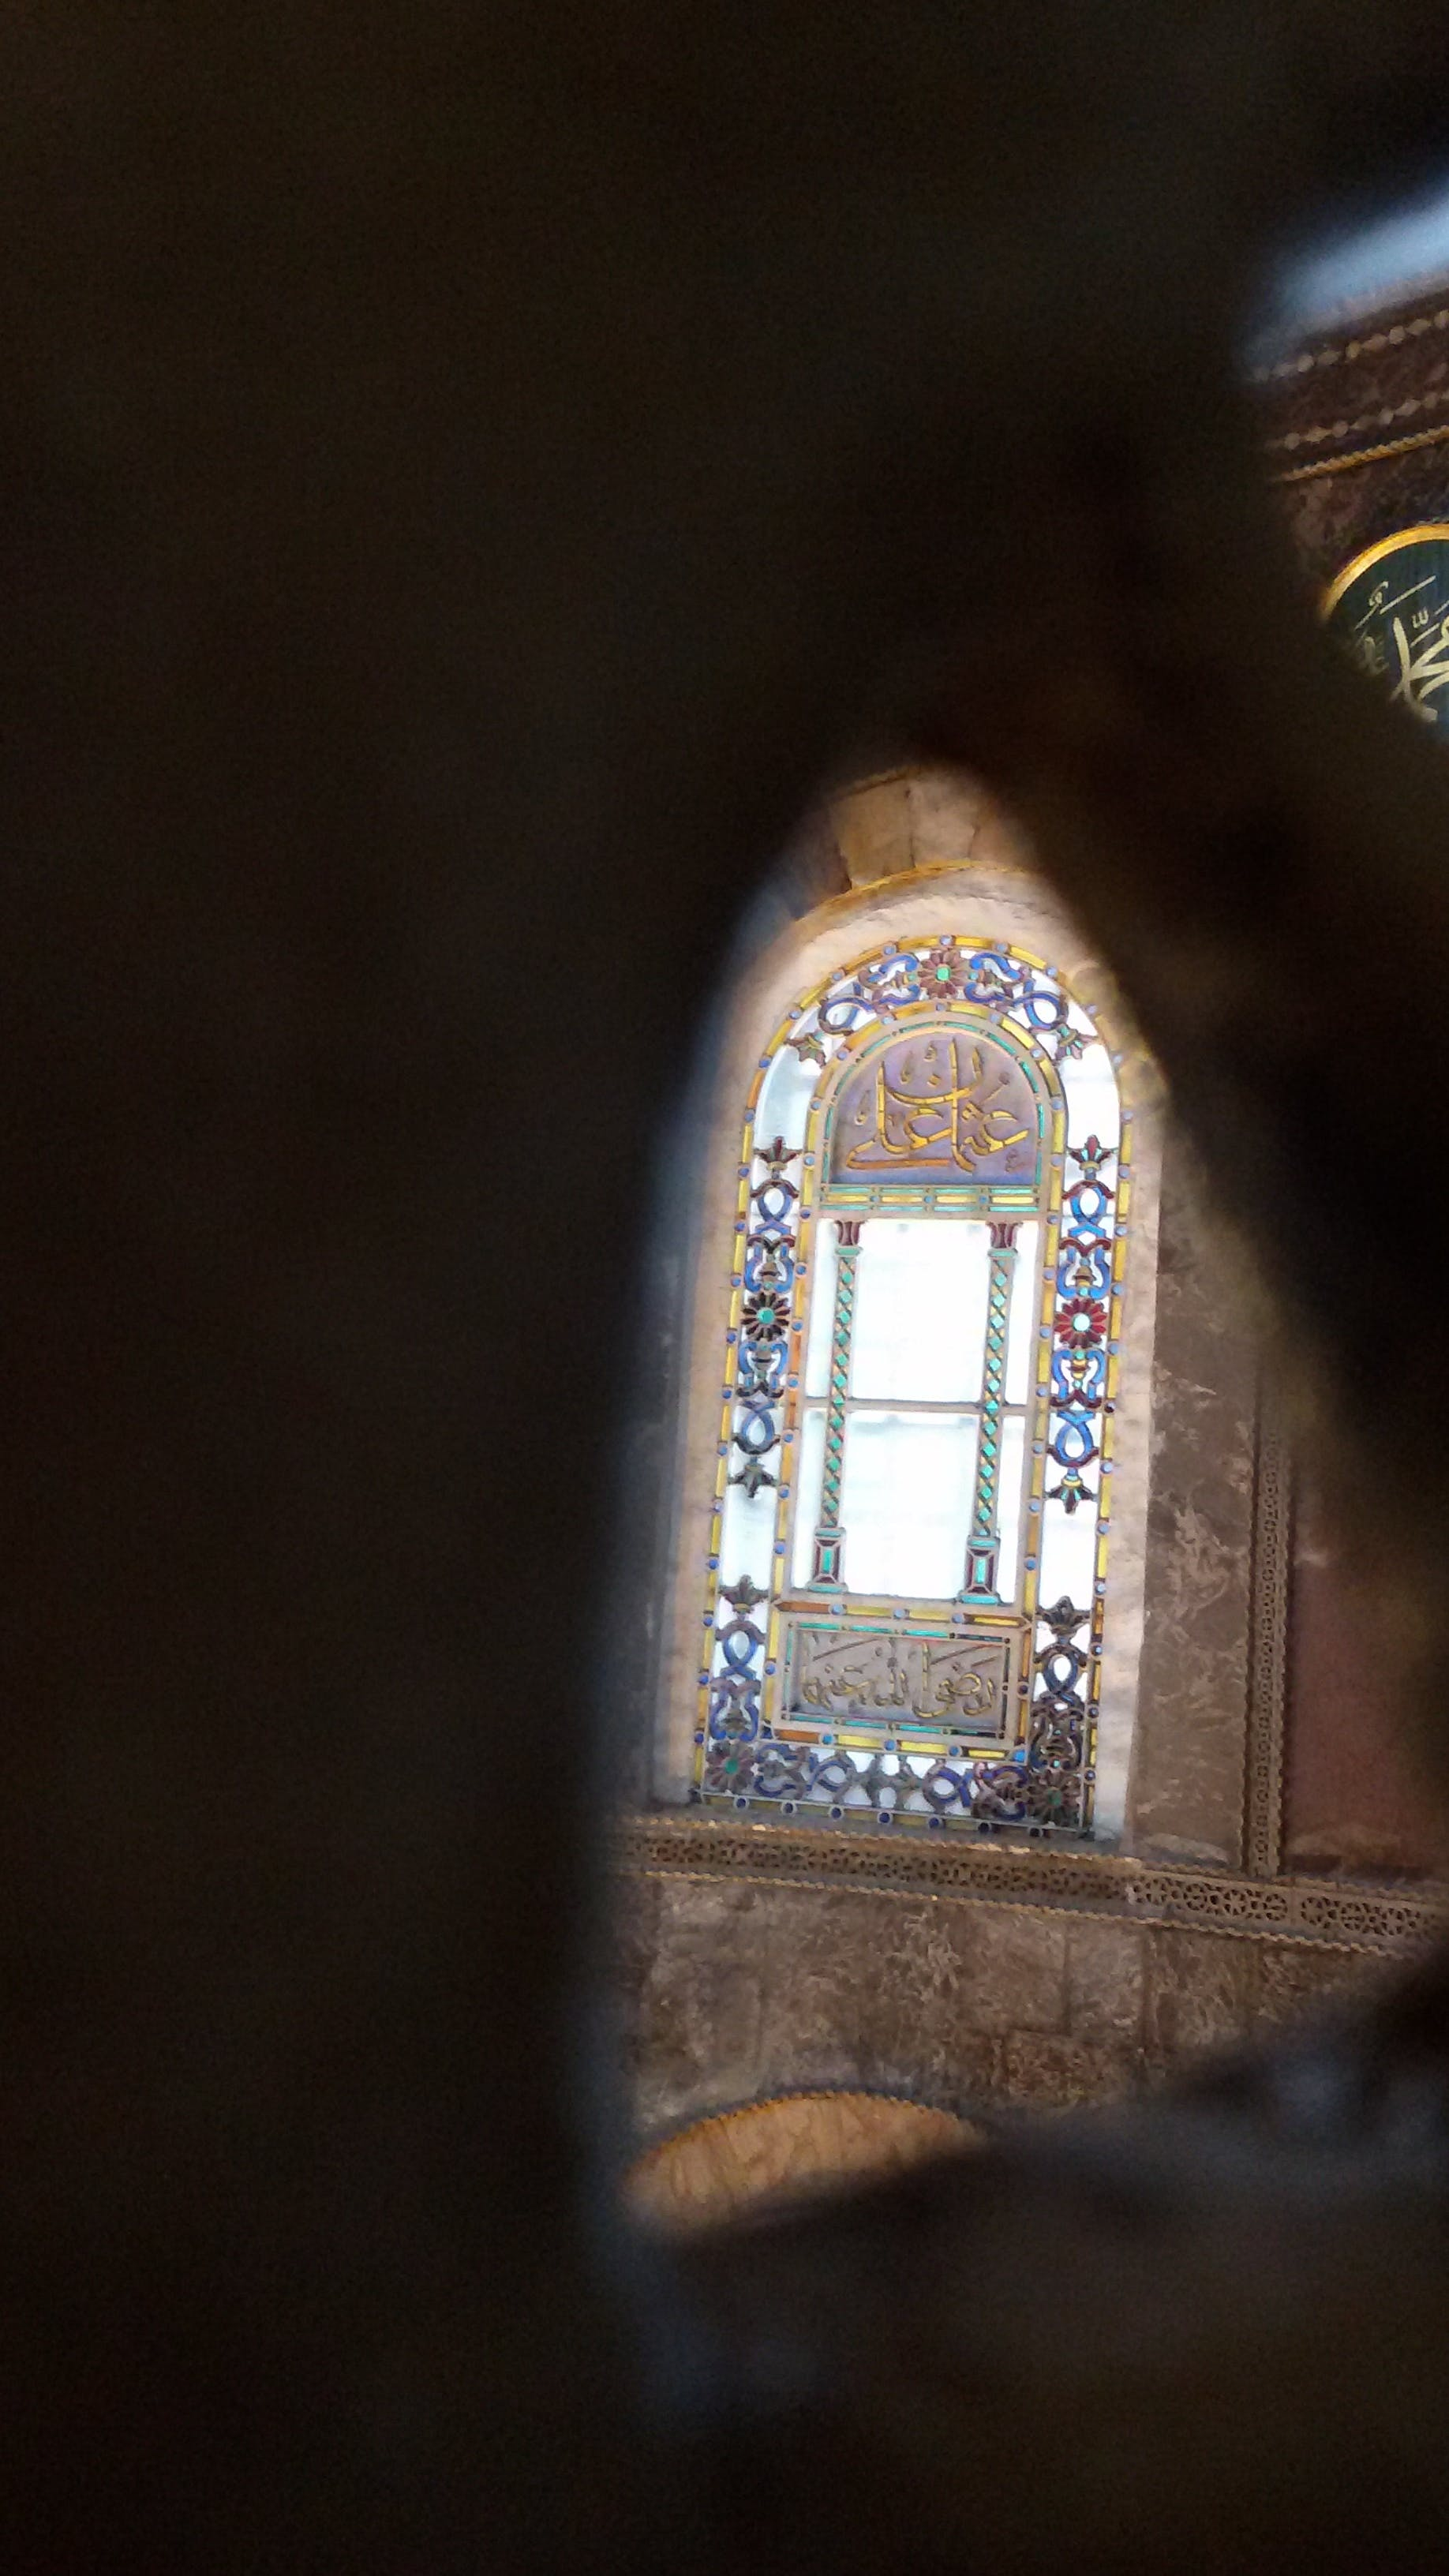 Free stock photo of arabic, arched window, manuscripts, mosque